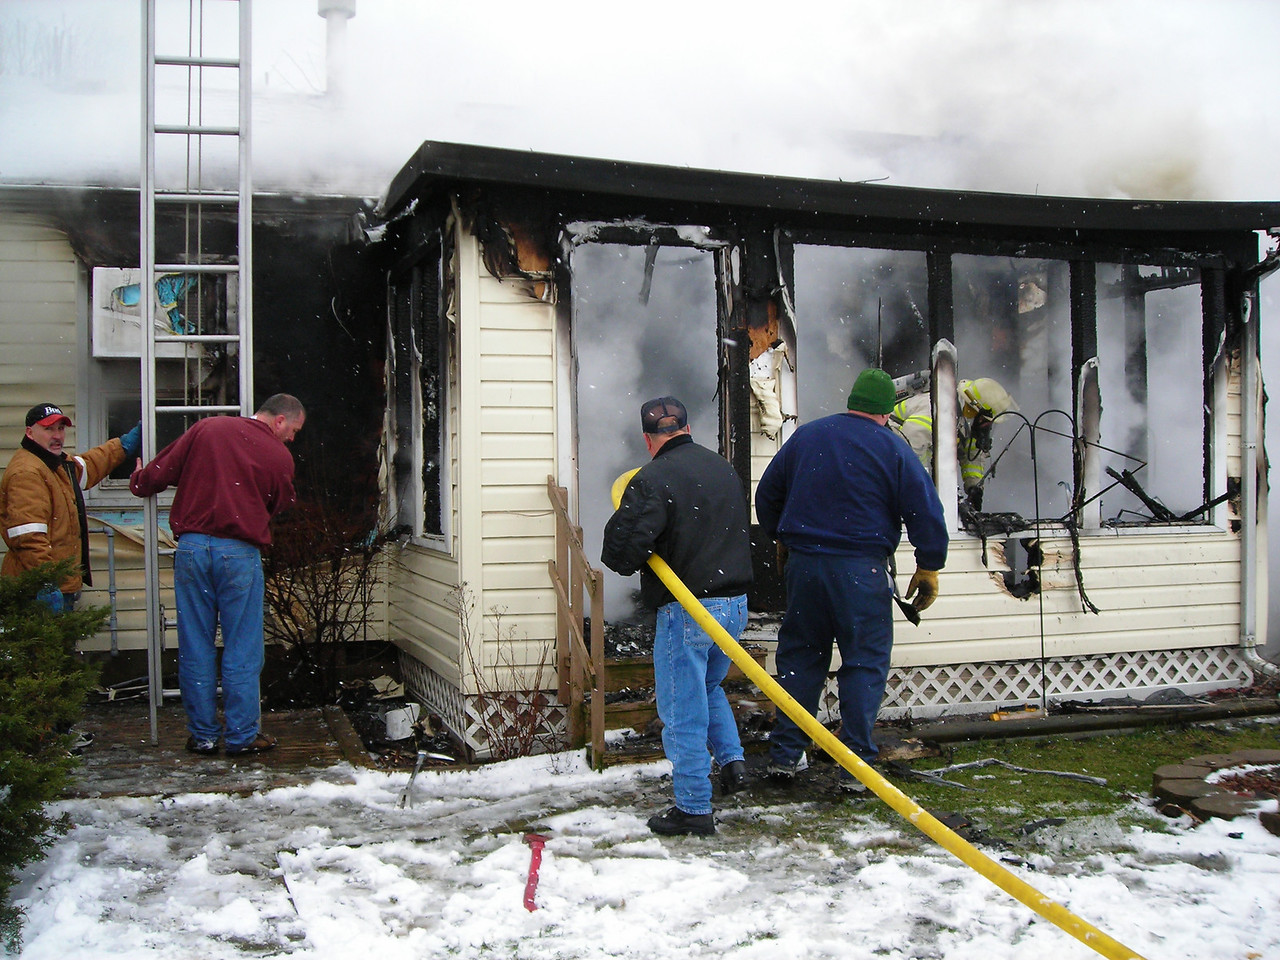 Utility workers and off duty police officers assist firefighters at a residential fire.